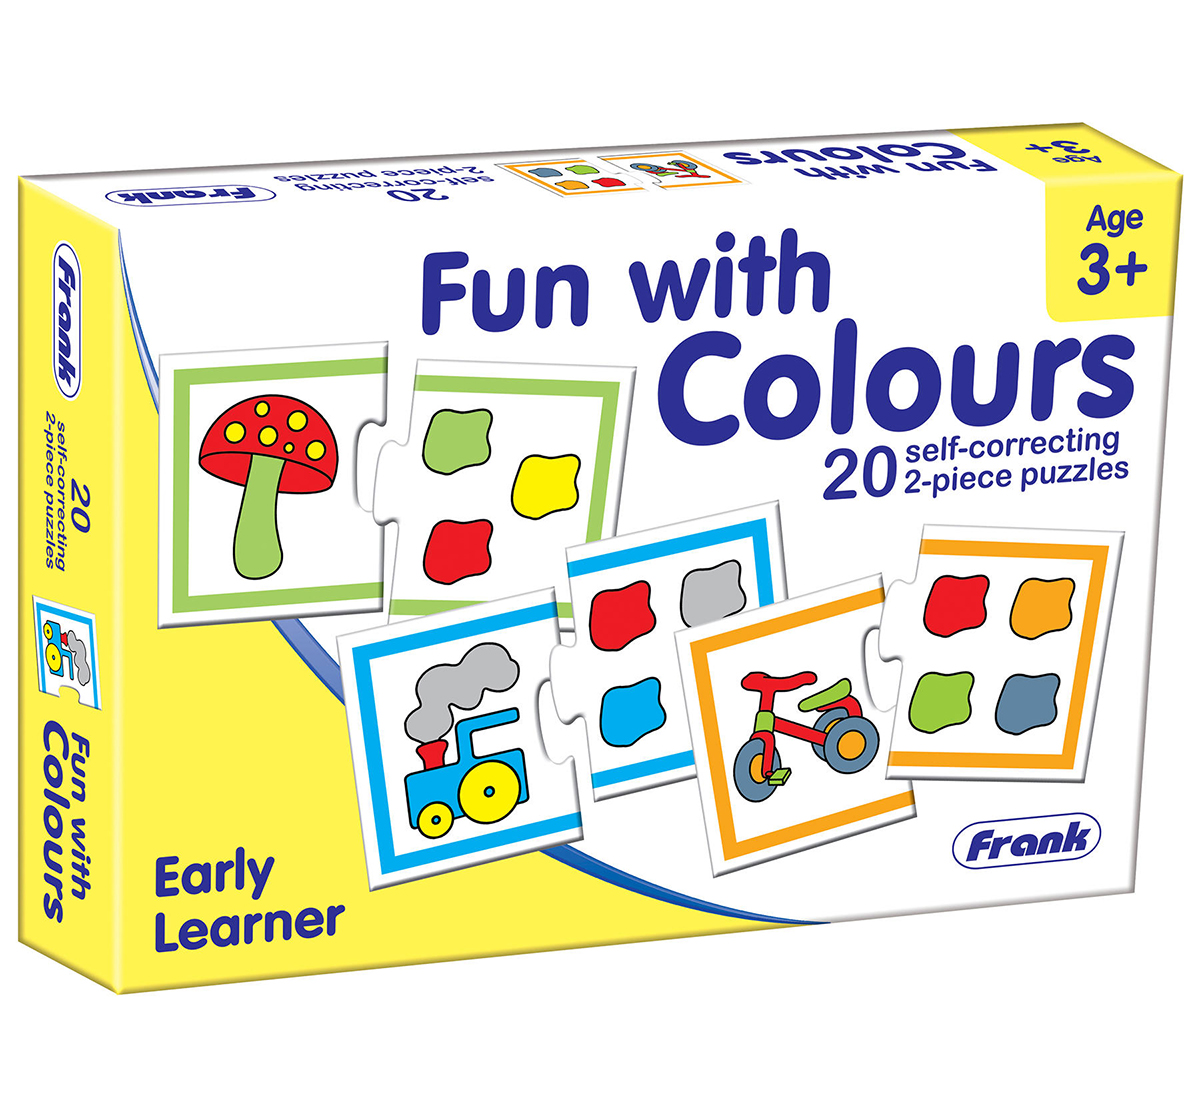 Frank   Frank Fun With Colours DIY Art & Craft Kits for Kids age 3Y+